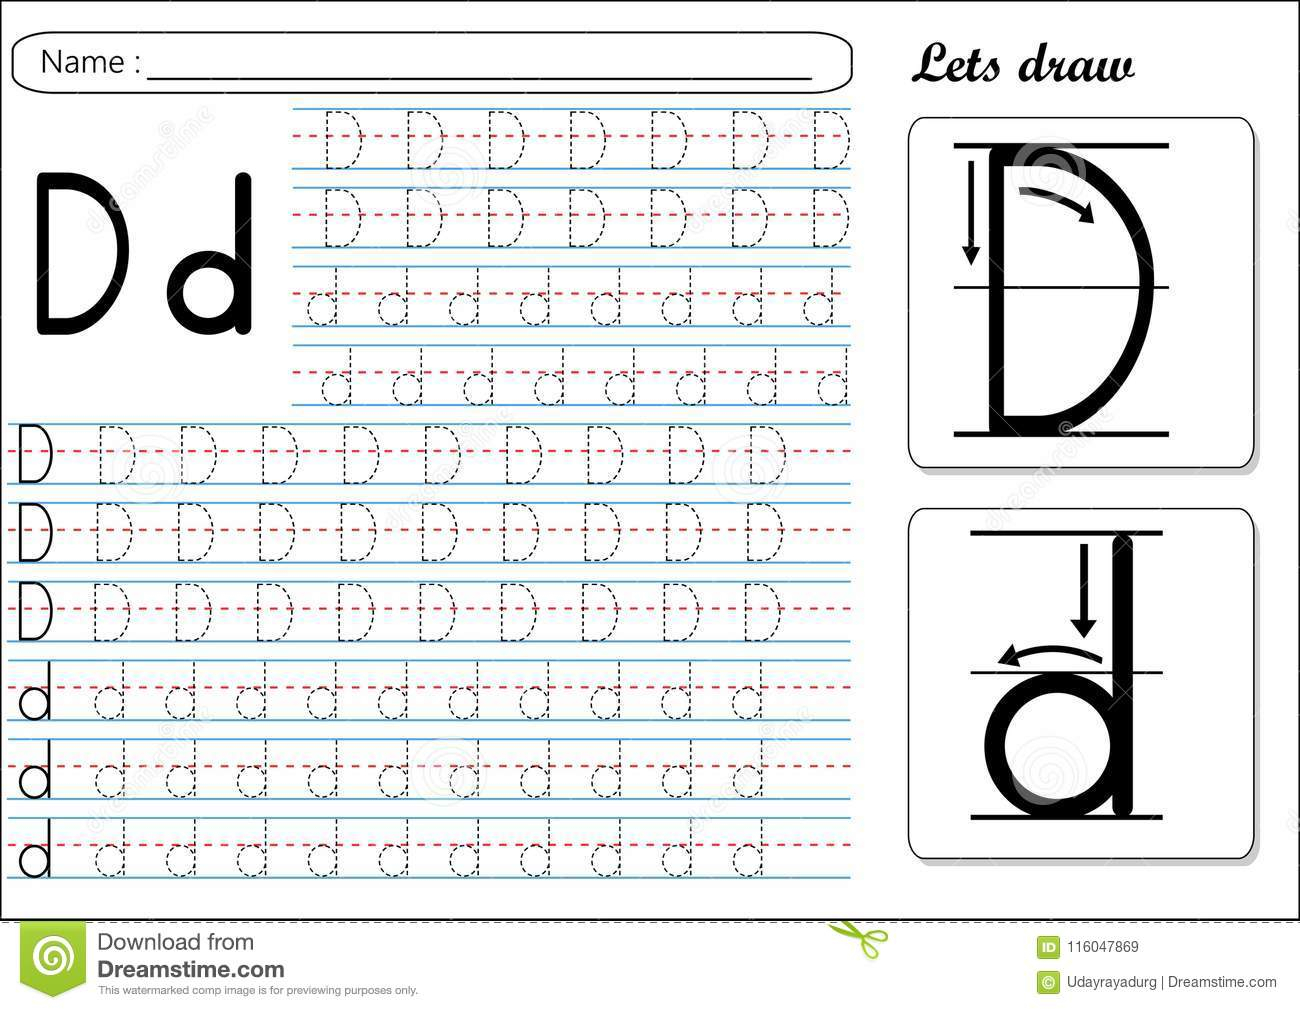 Tracing Worksheet -Dd Stock Vector. Illustration Of Small within Tracing Letter Dd Worksheet